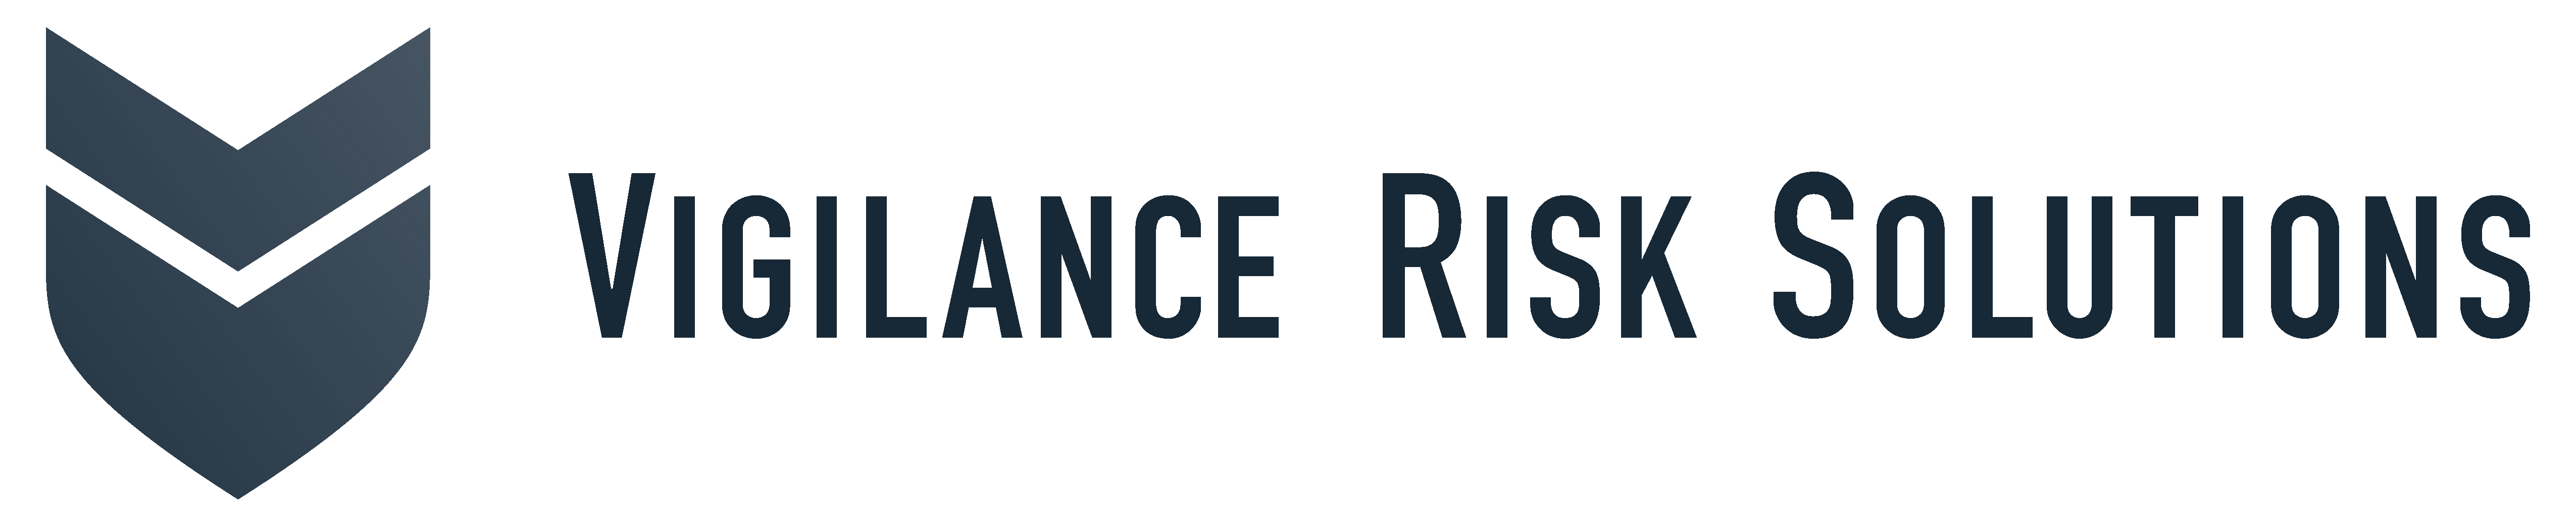 Security Consulting | Risk Mitigation | Vigilance Risk Solutions